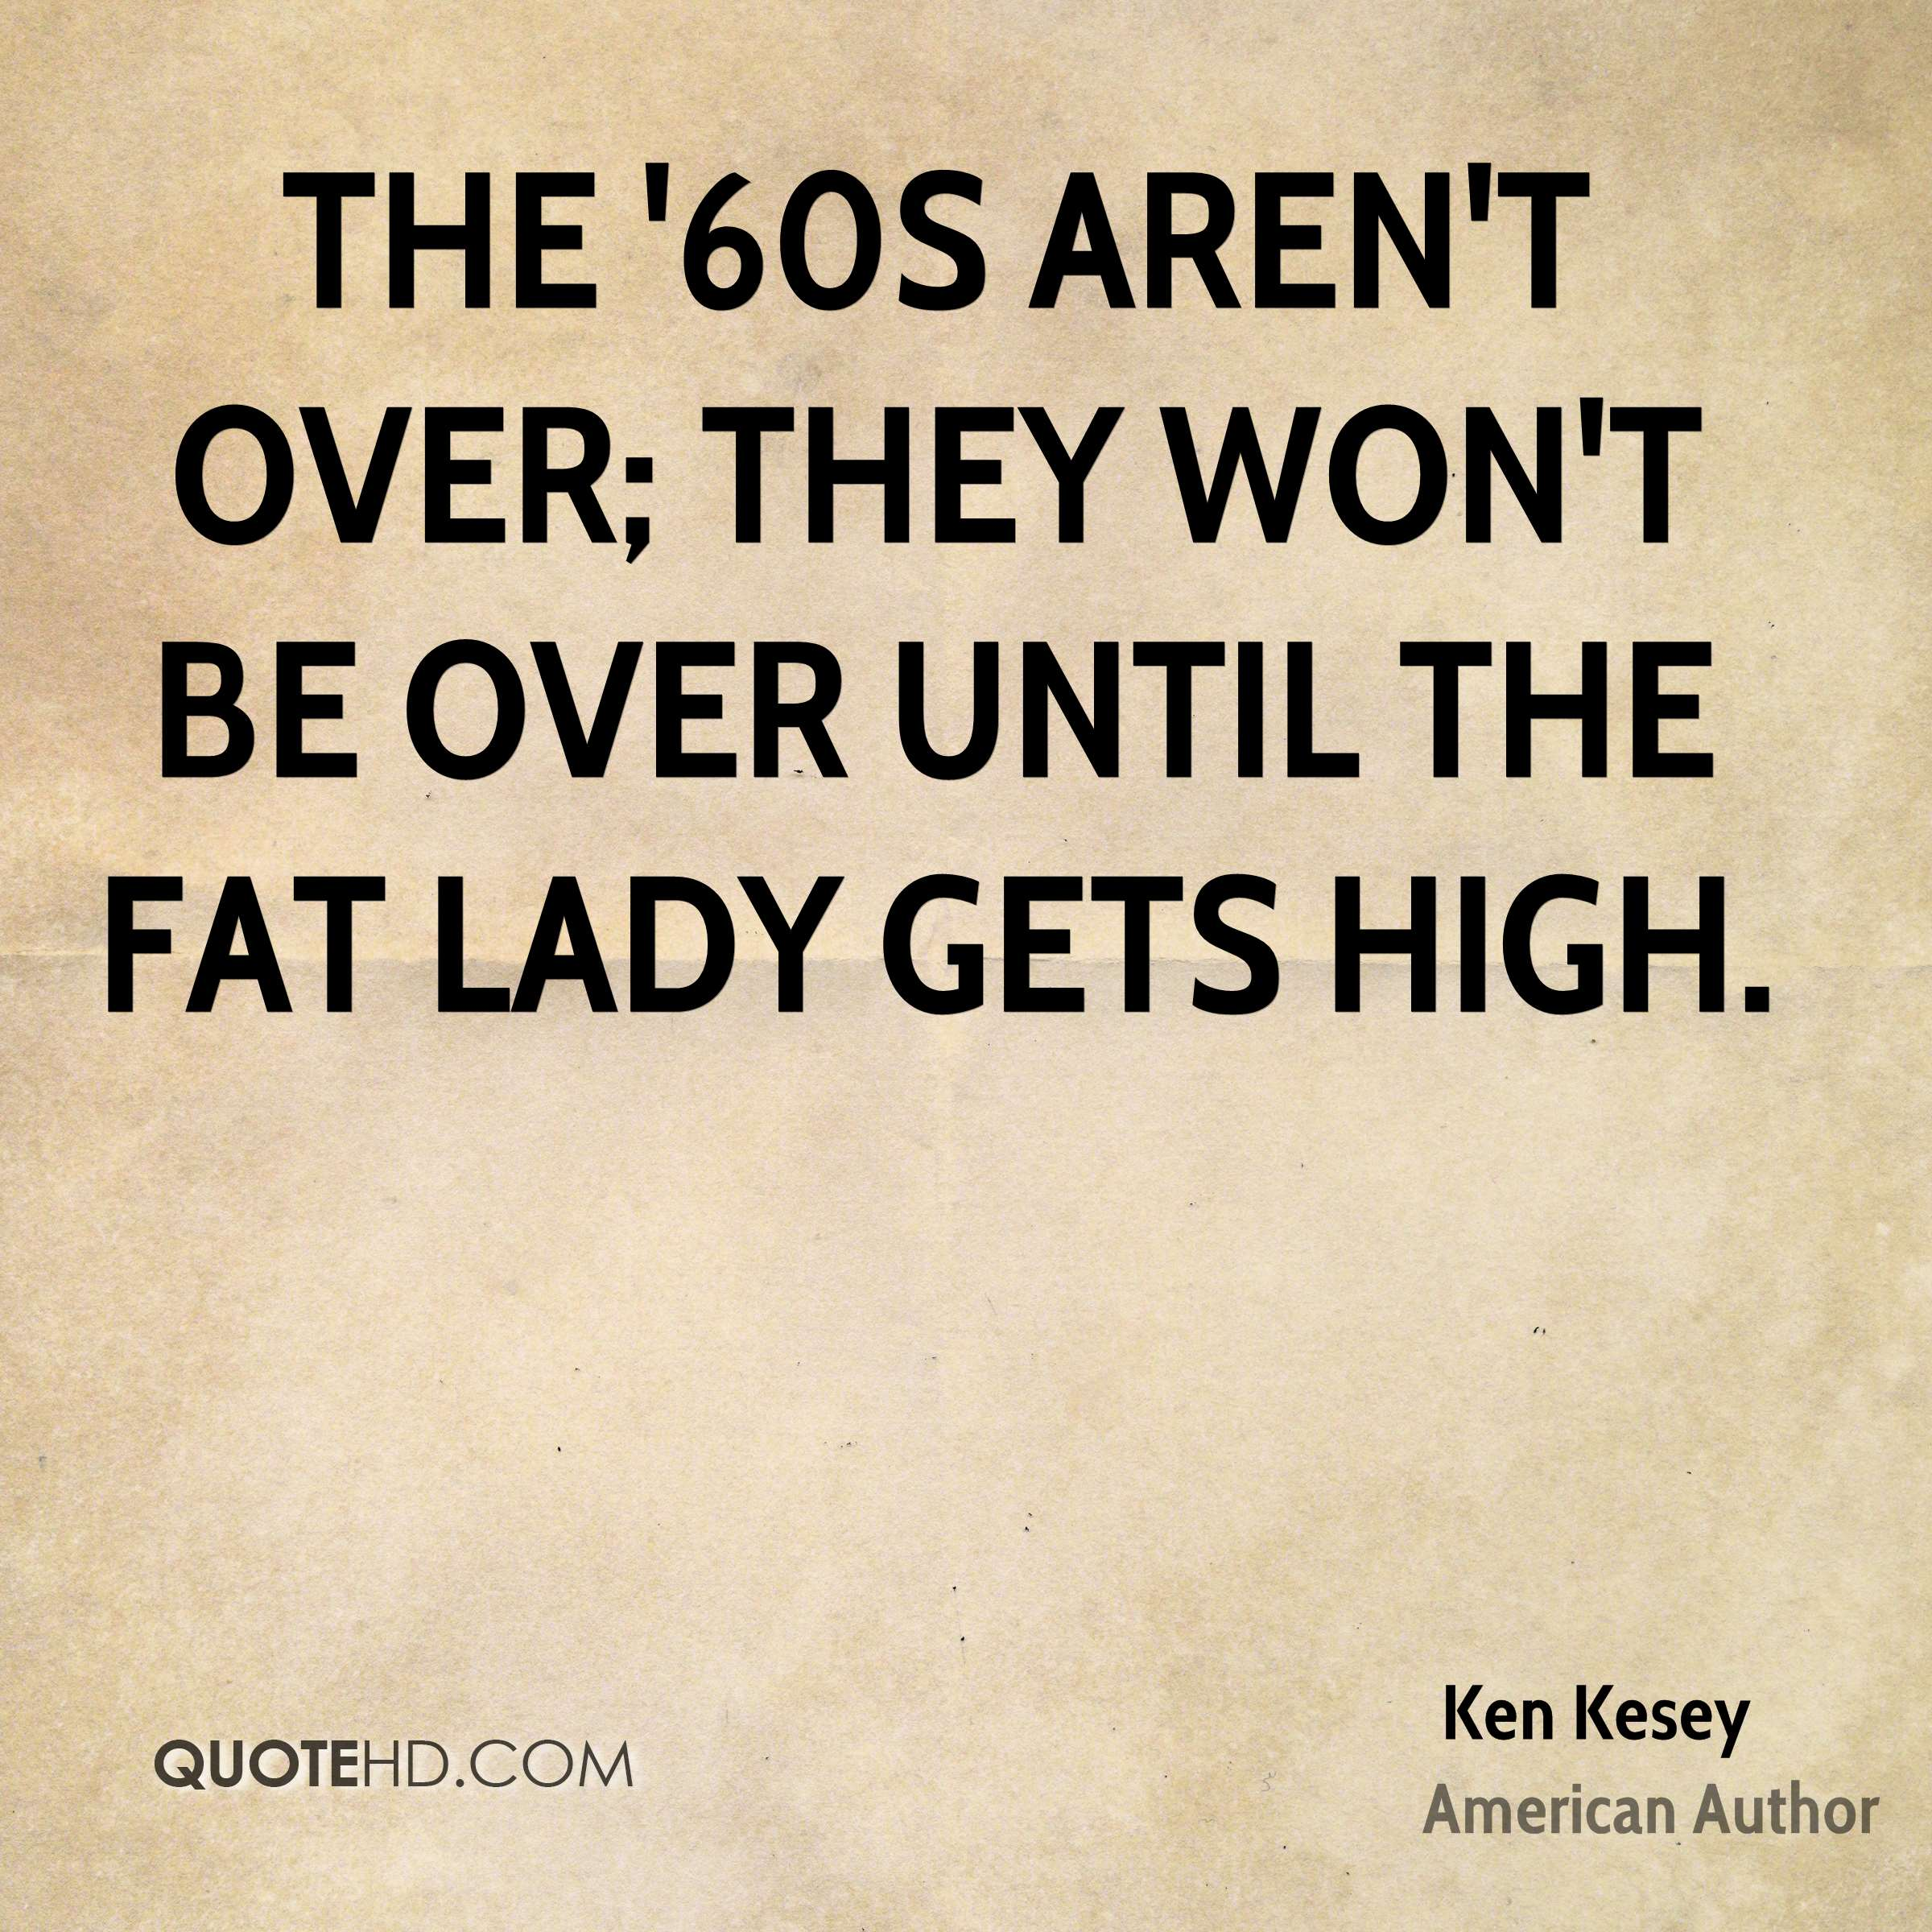 The '60s aren't over; they won't be over until the Fat Lady gets high.